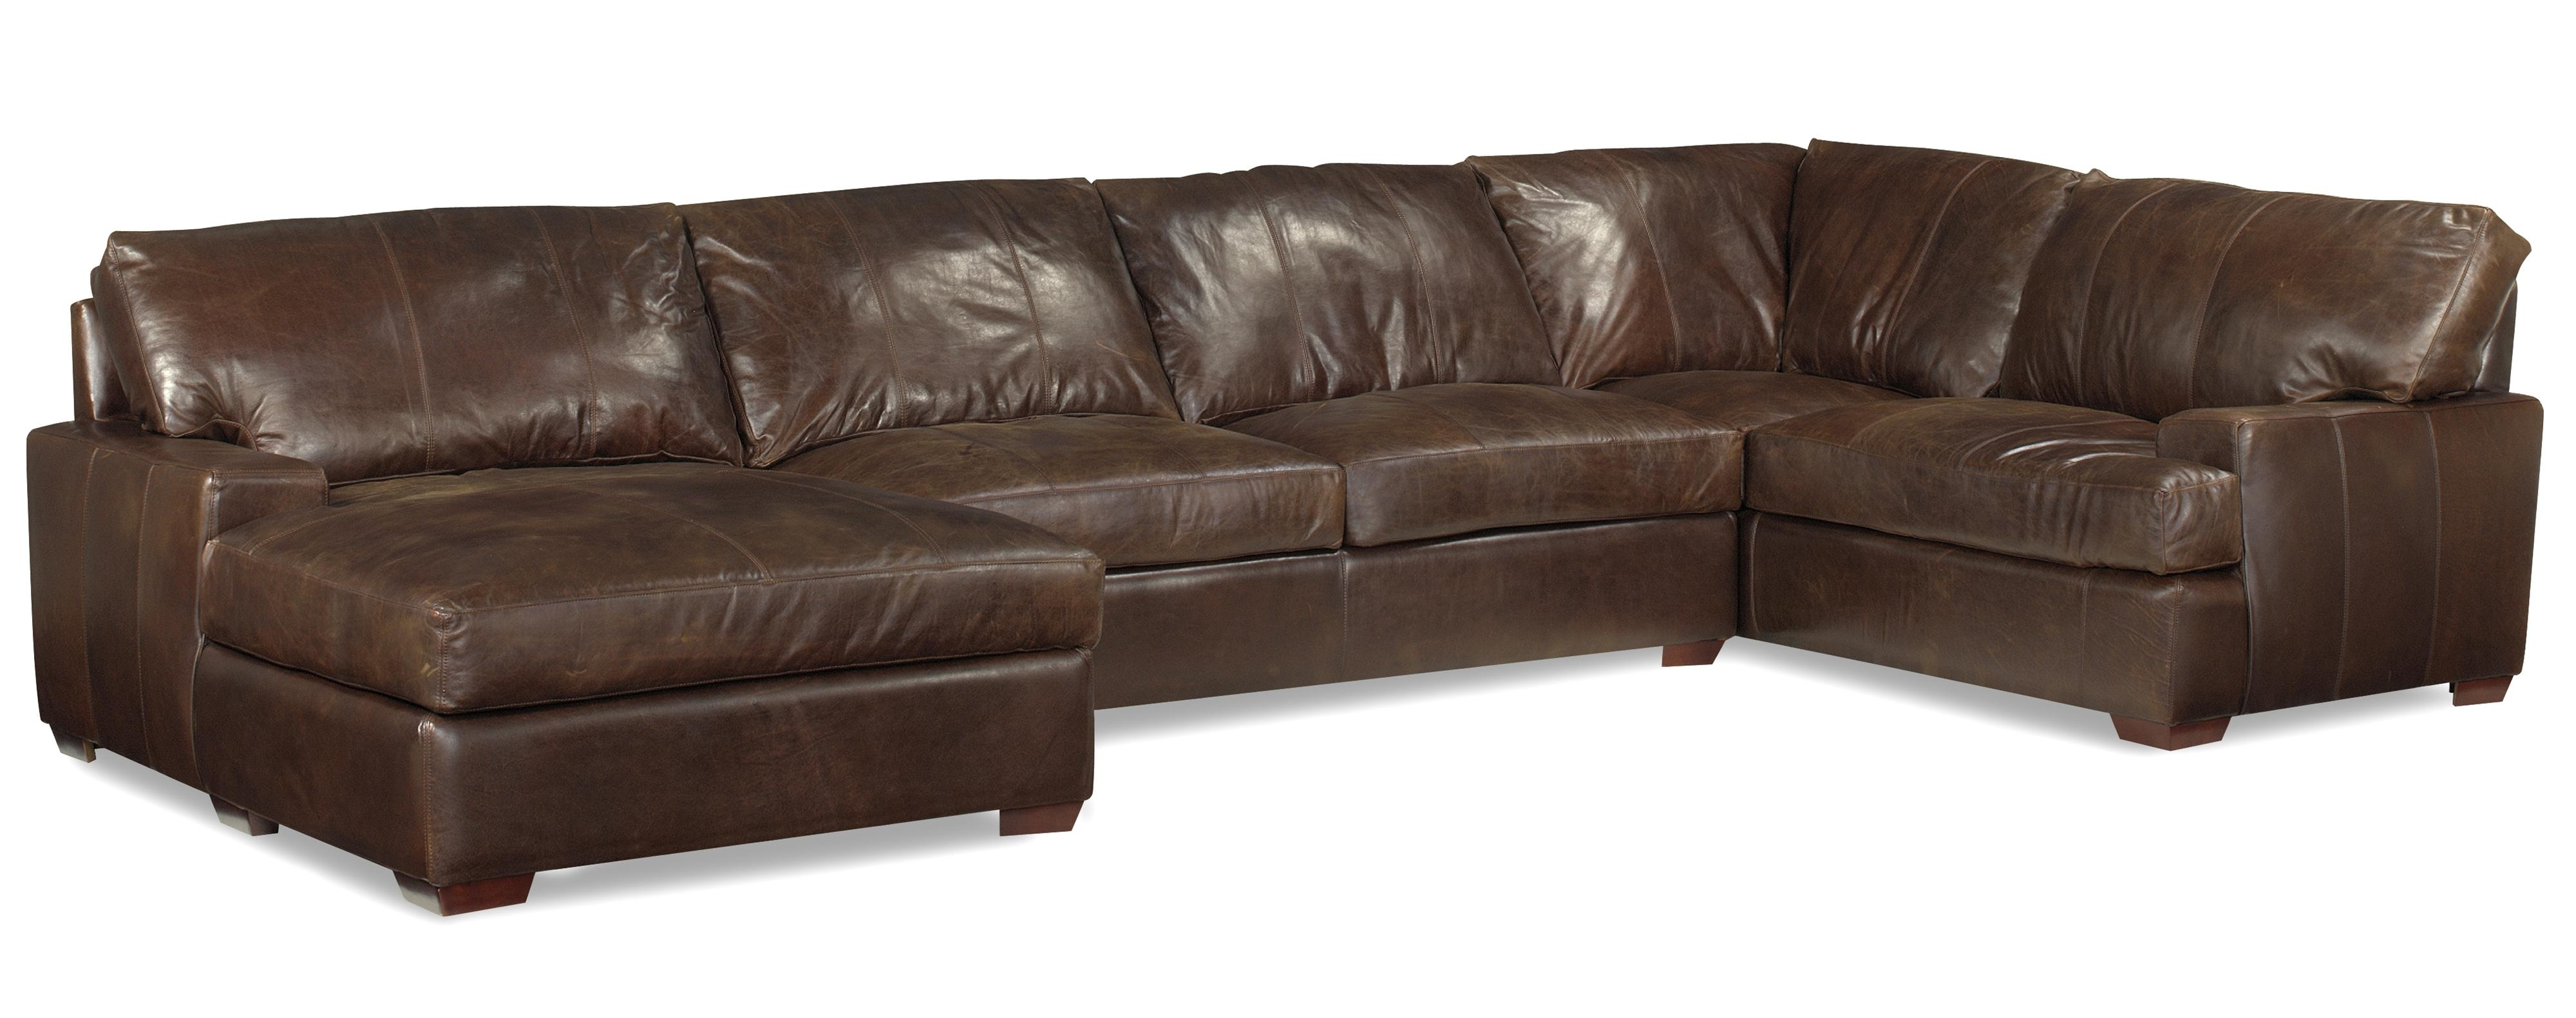 Ikea Ektorp Sectional Loveseat Sectional With Chaise Sectionals Intended For Most Popular Leather Sectionals With Chaise (Gallery 5 of 15)